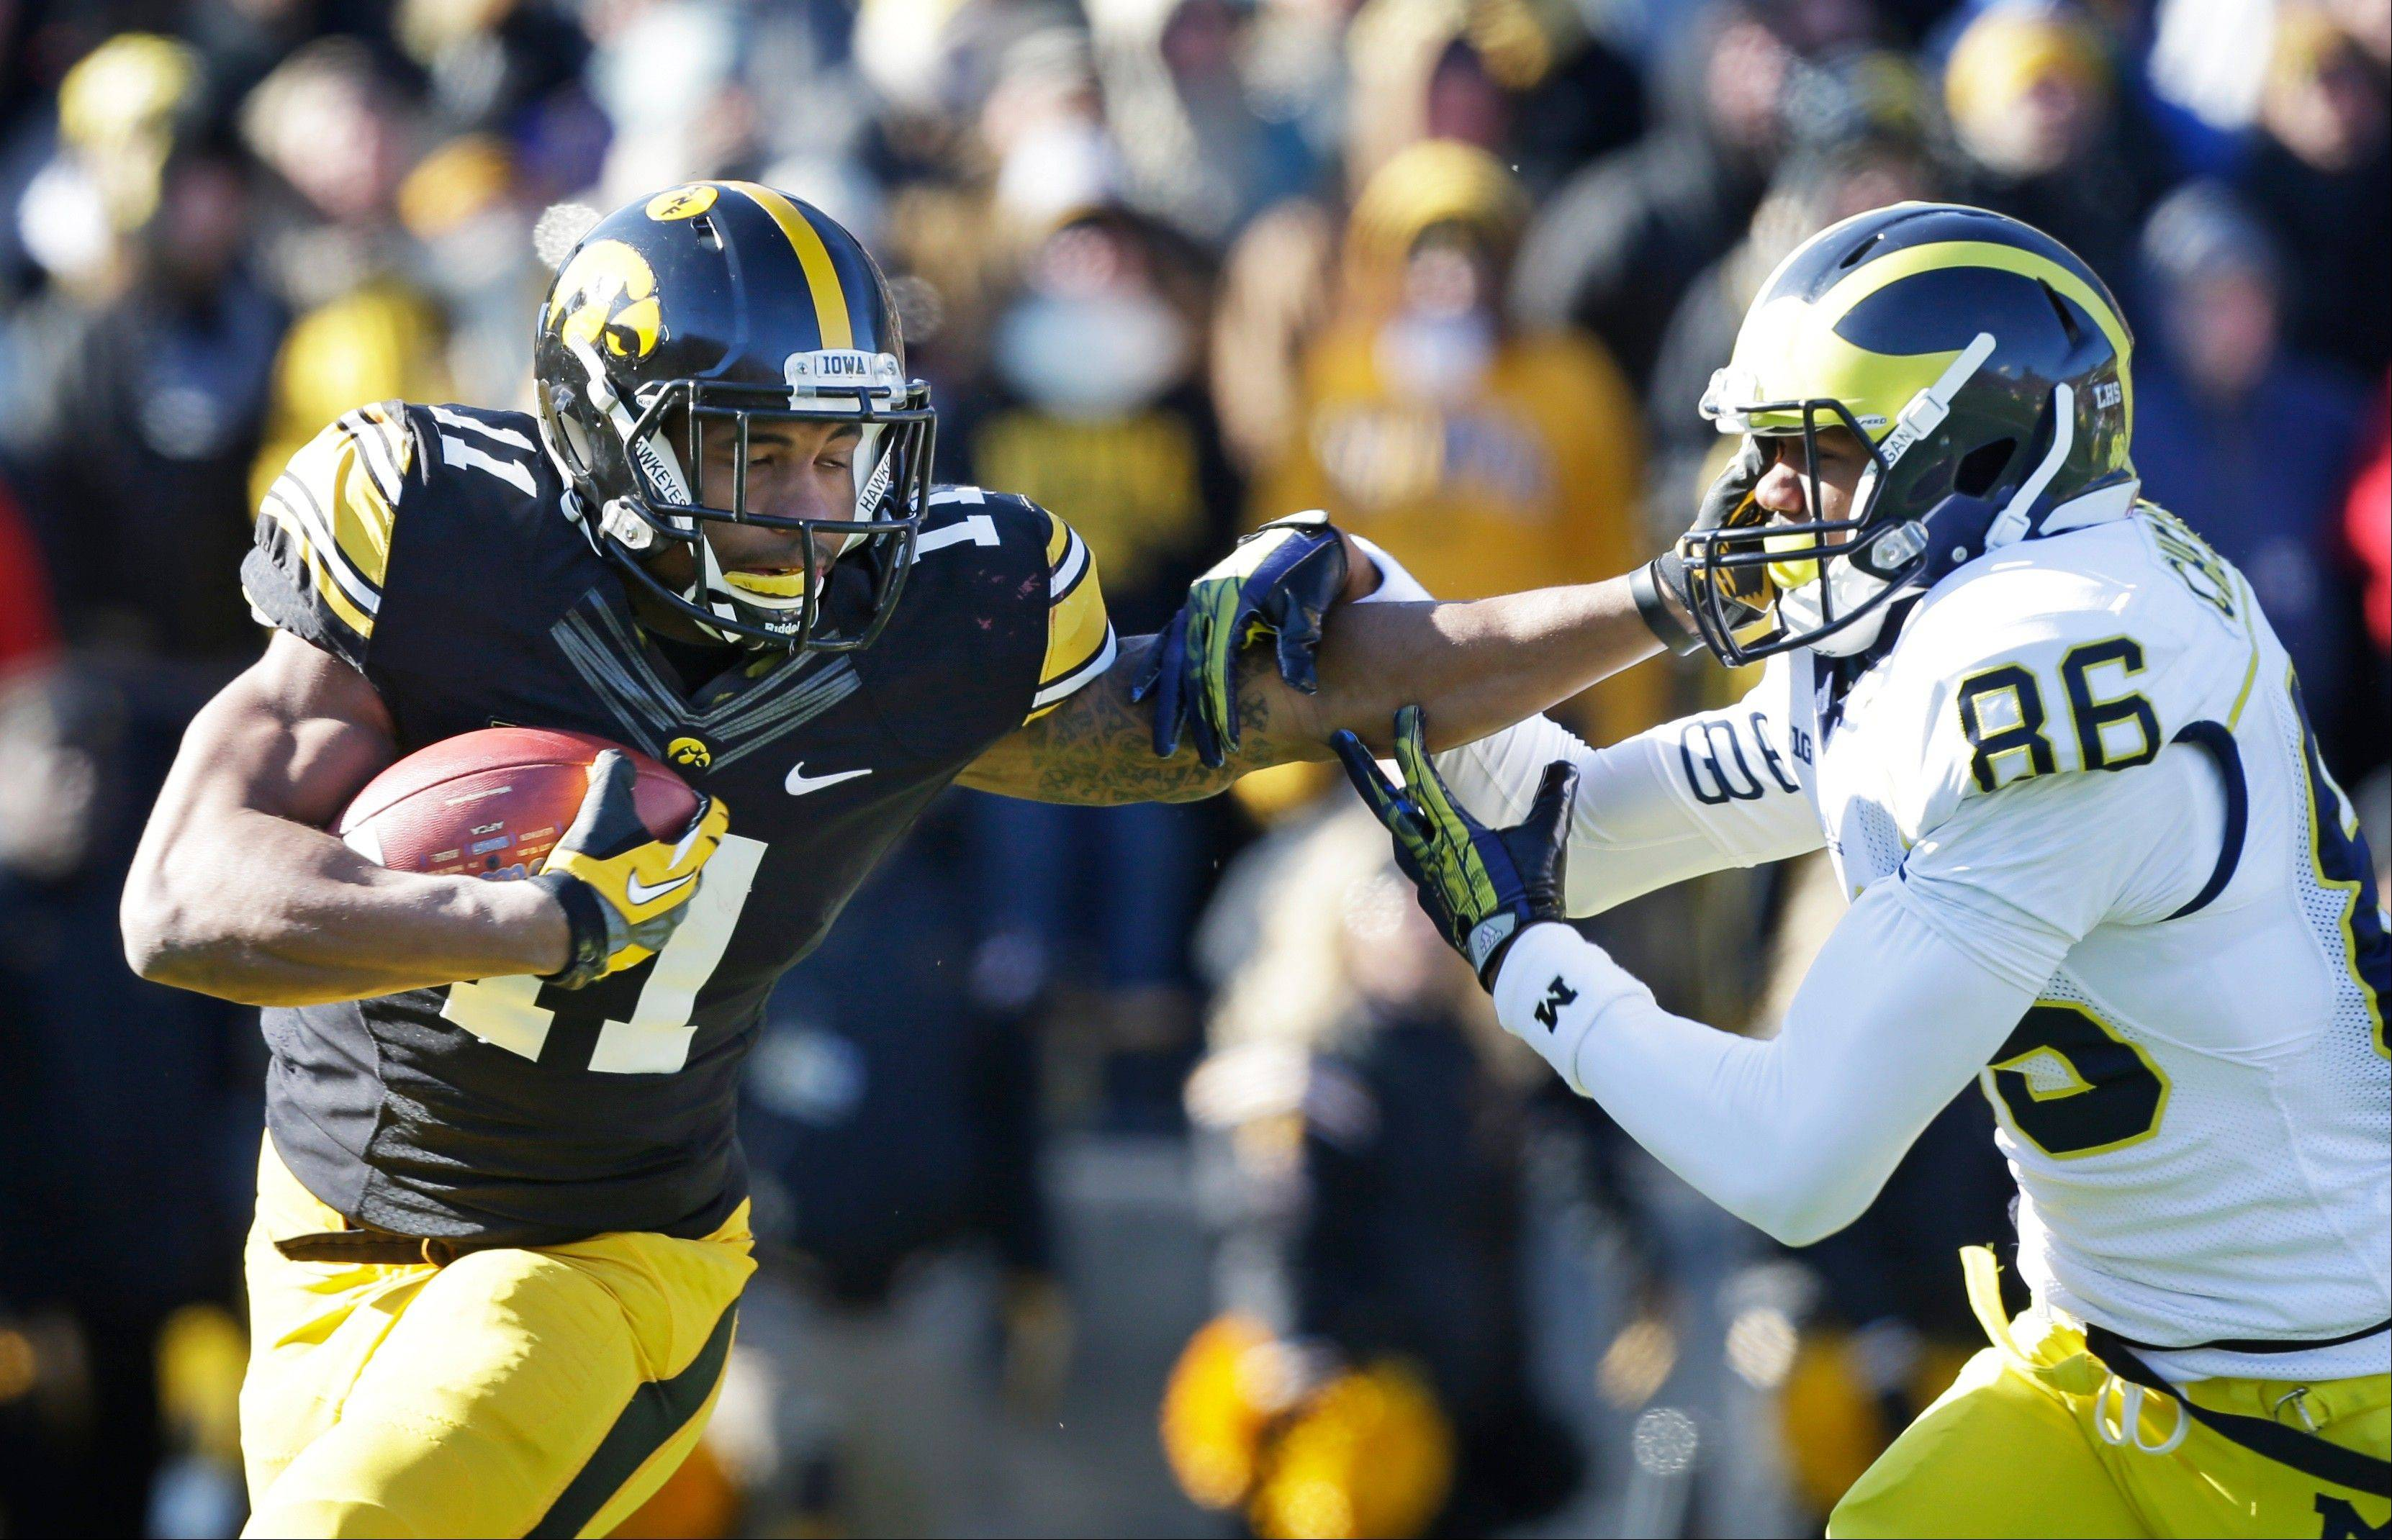 Iowa rallies past Michigan 24-21